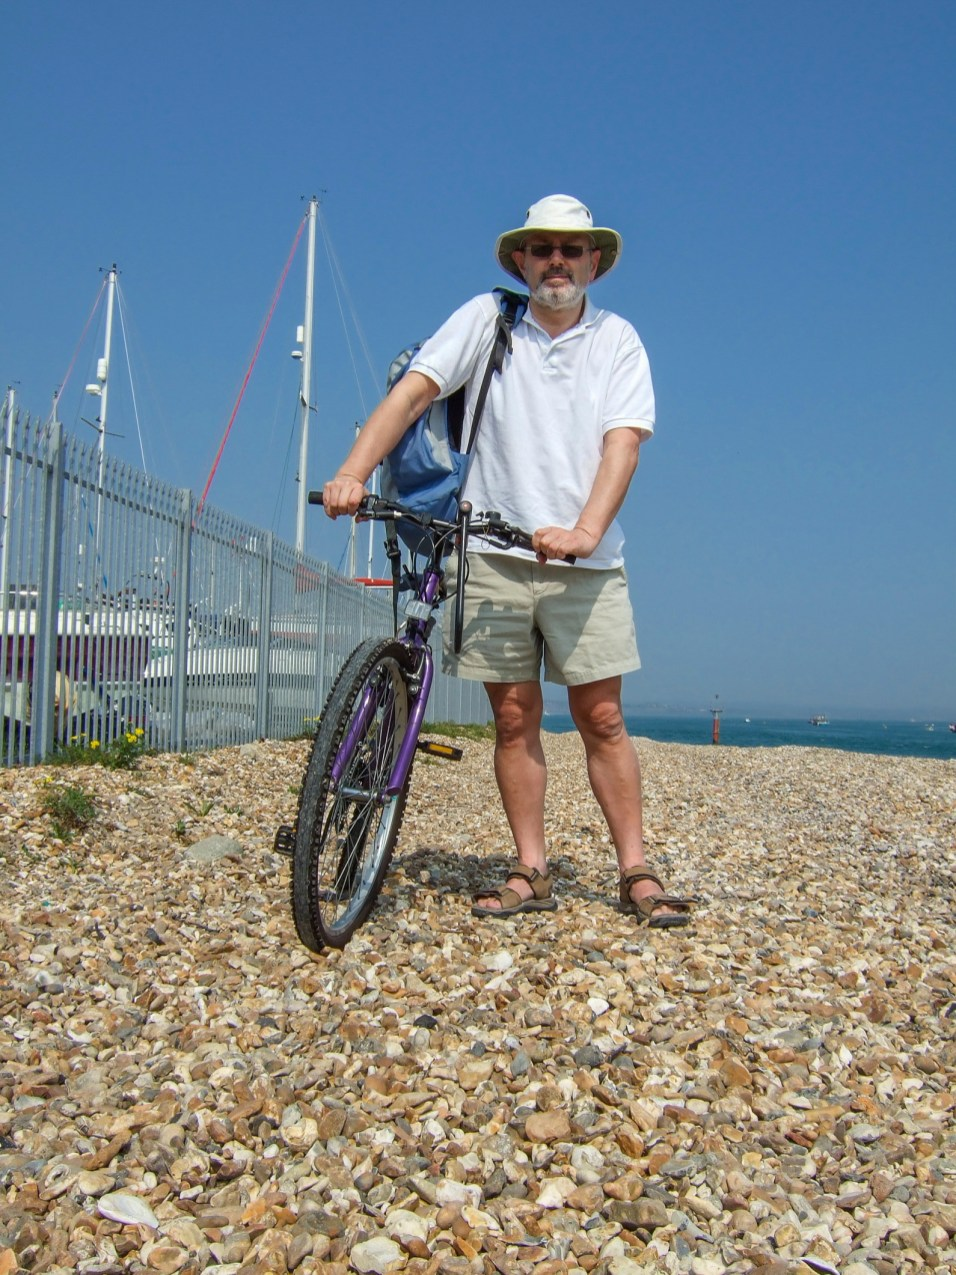 Gary + bike. Copyright © 2007 Gary Allman, all rights reserved.